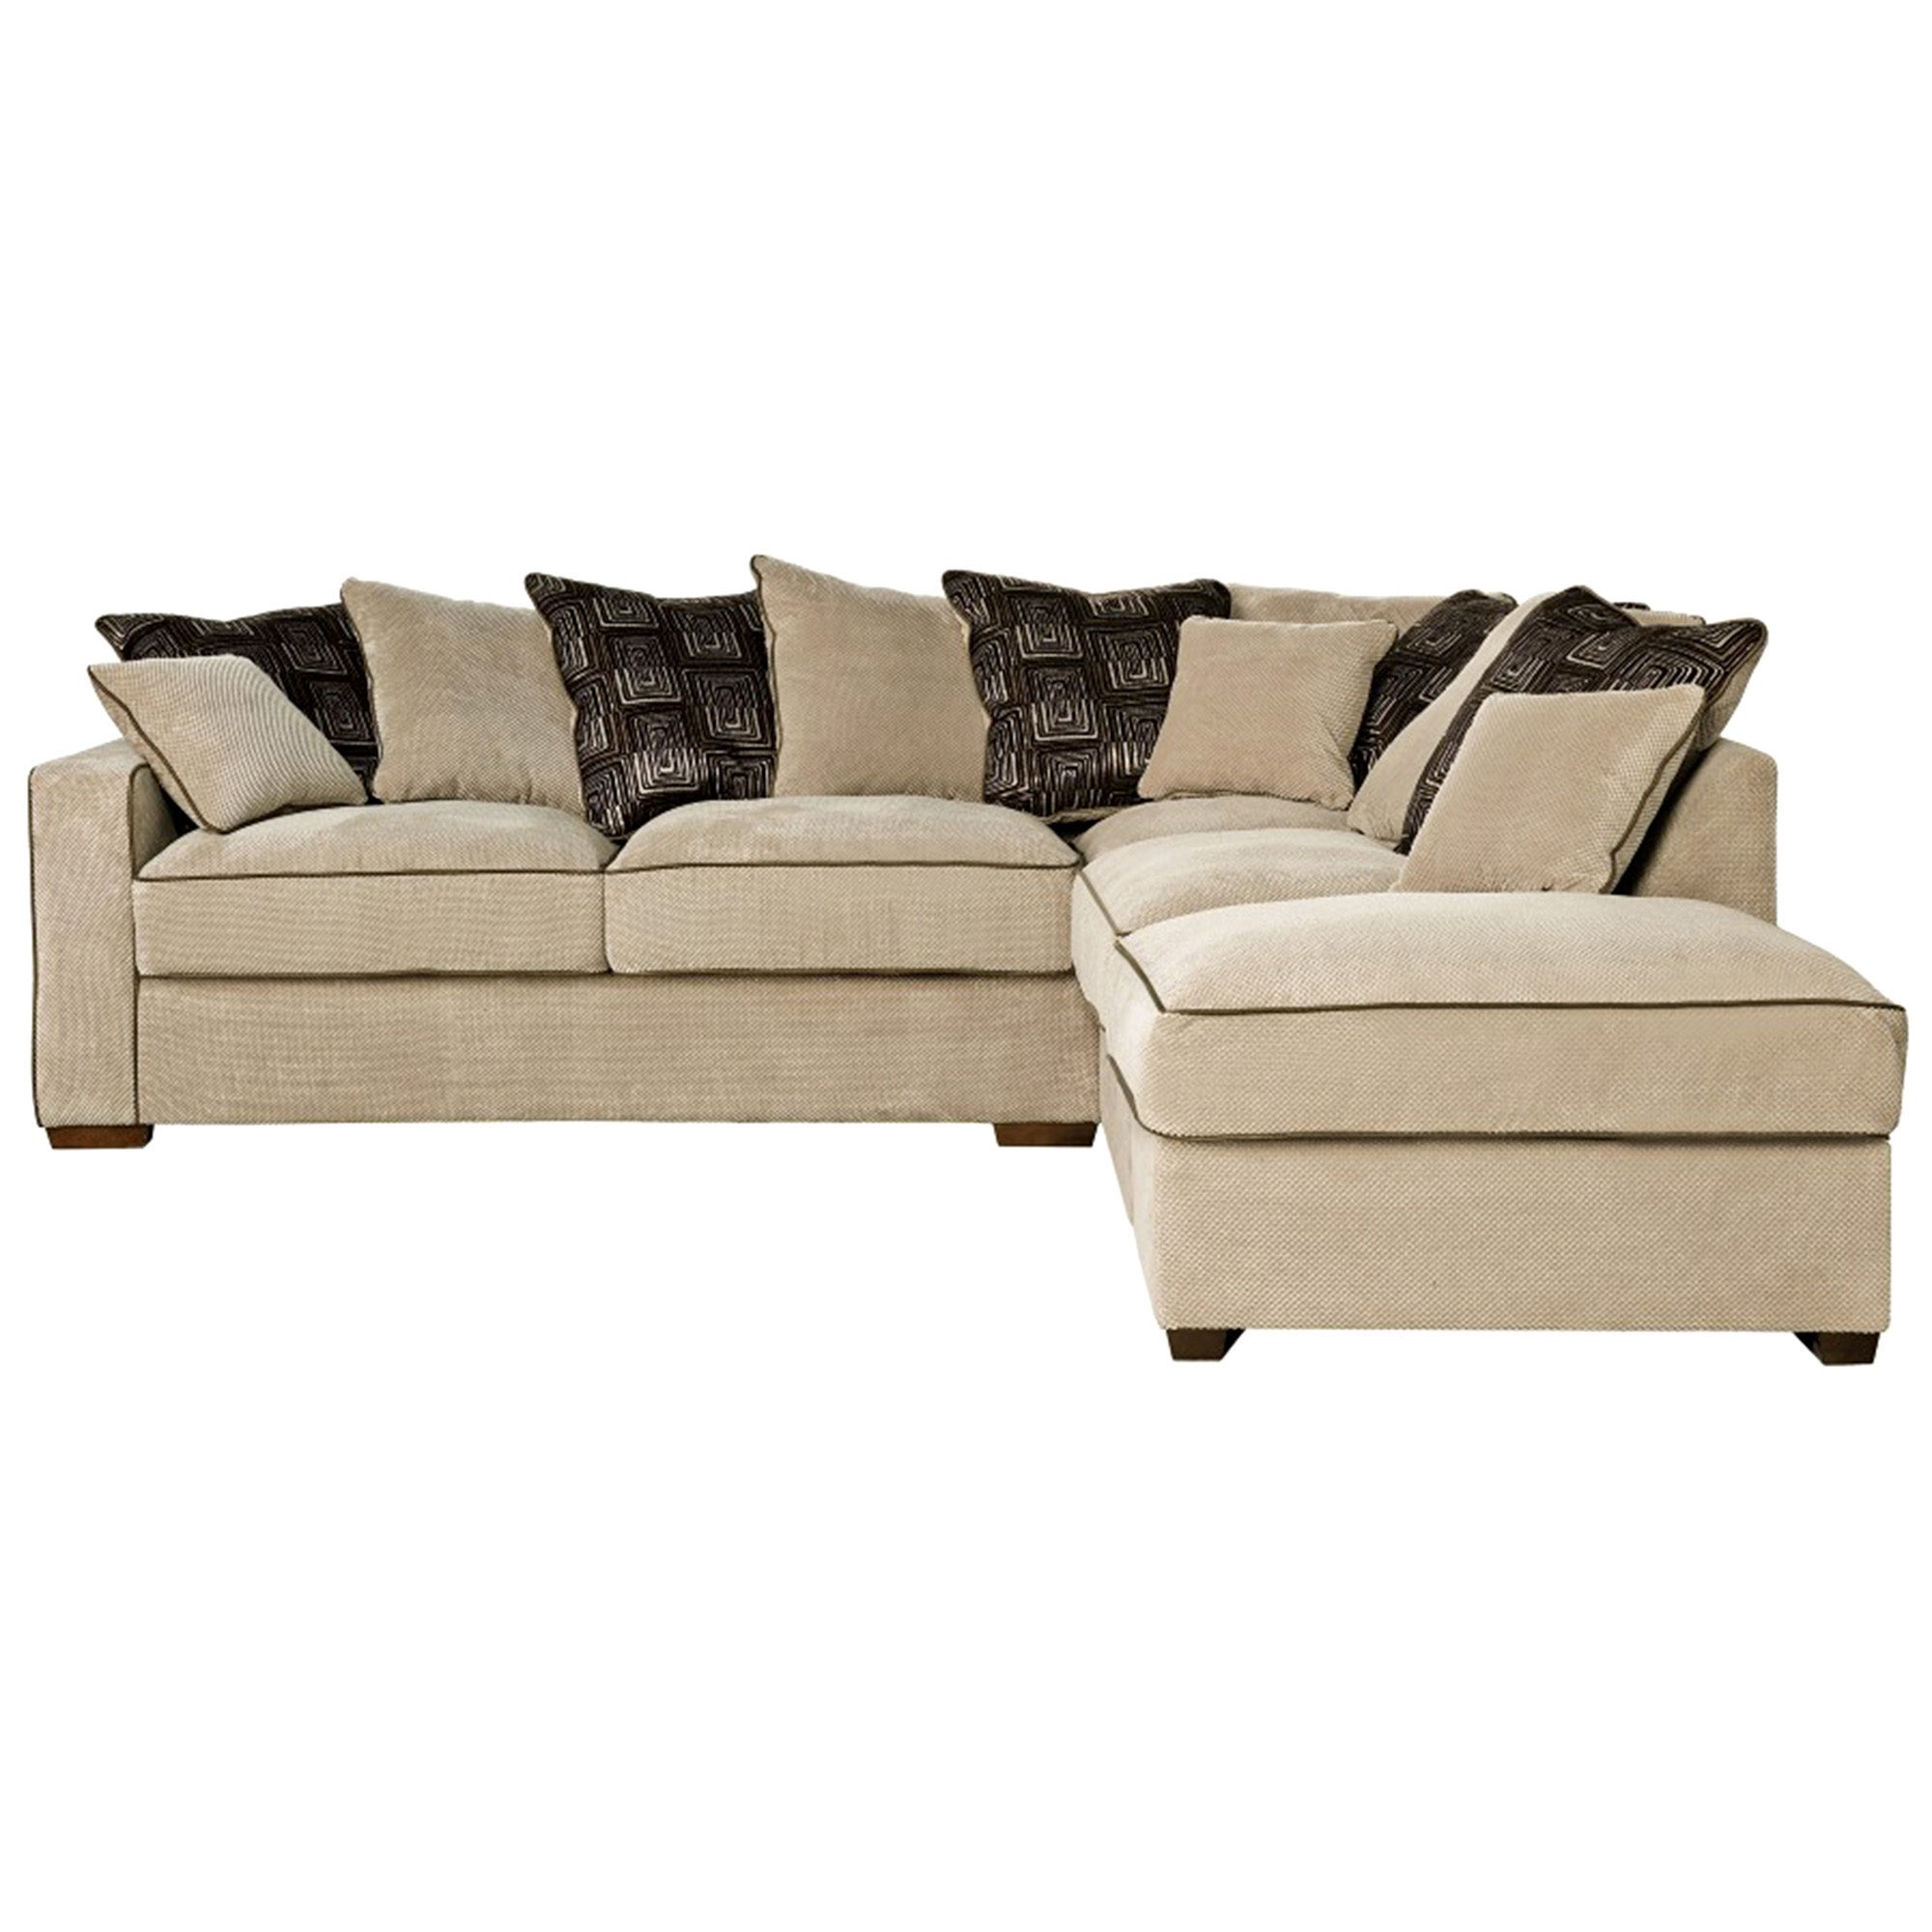 Buxton Collection Corner Sofa